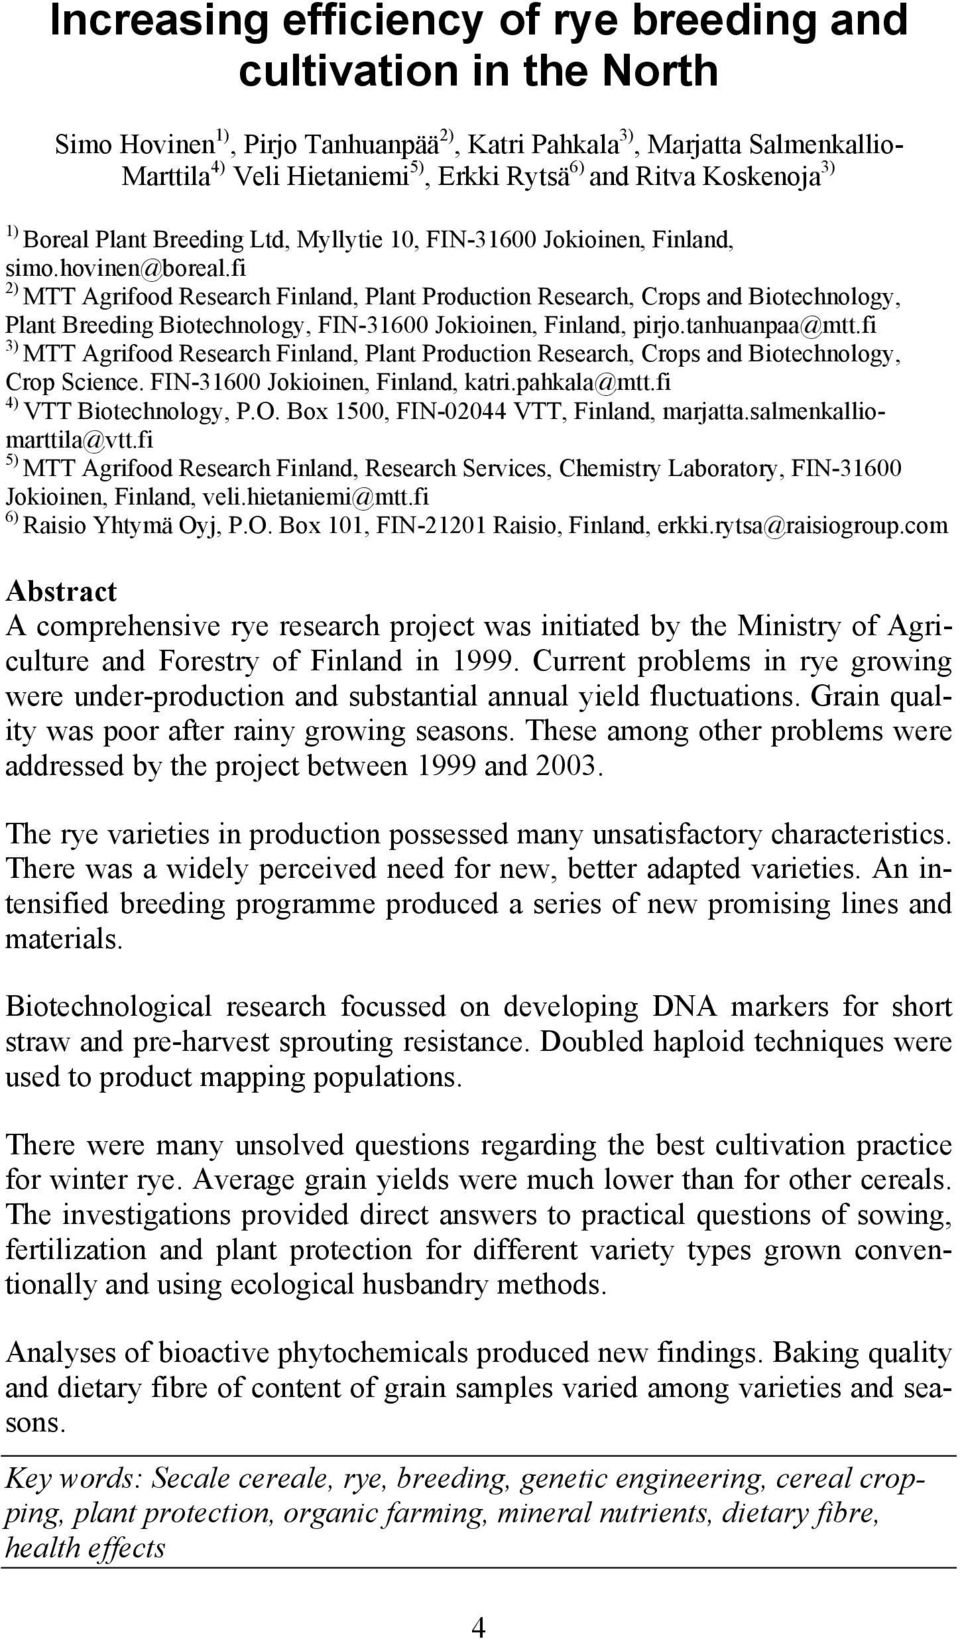 fi 2) MTT Agrifood Research Finland, Plant Production Research, Crops and Biotechnology, Plant Breeding Biotechnology, FIN-31600 Jokioinen, Finland, pirjo.tanhuanpaa@mtt.